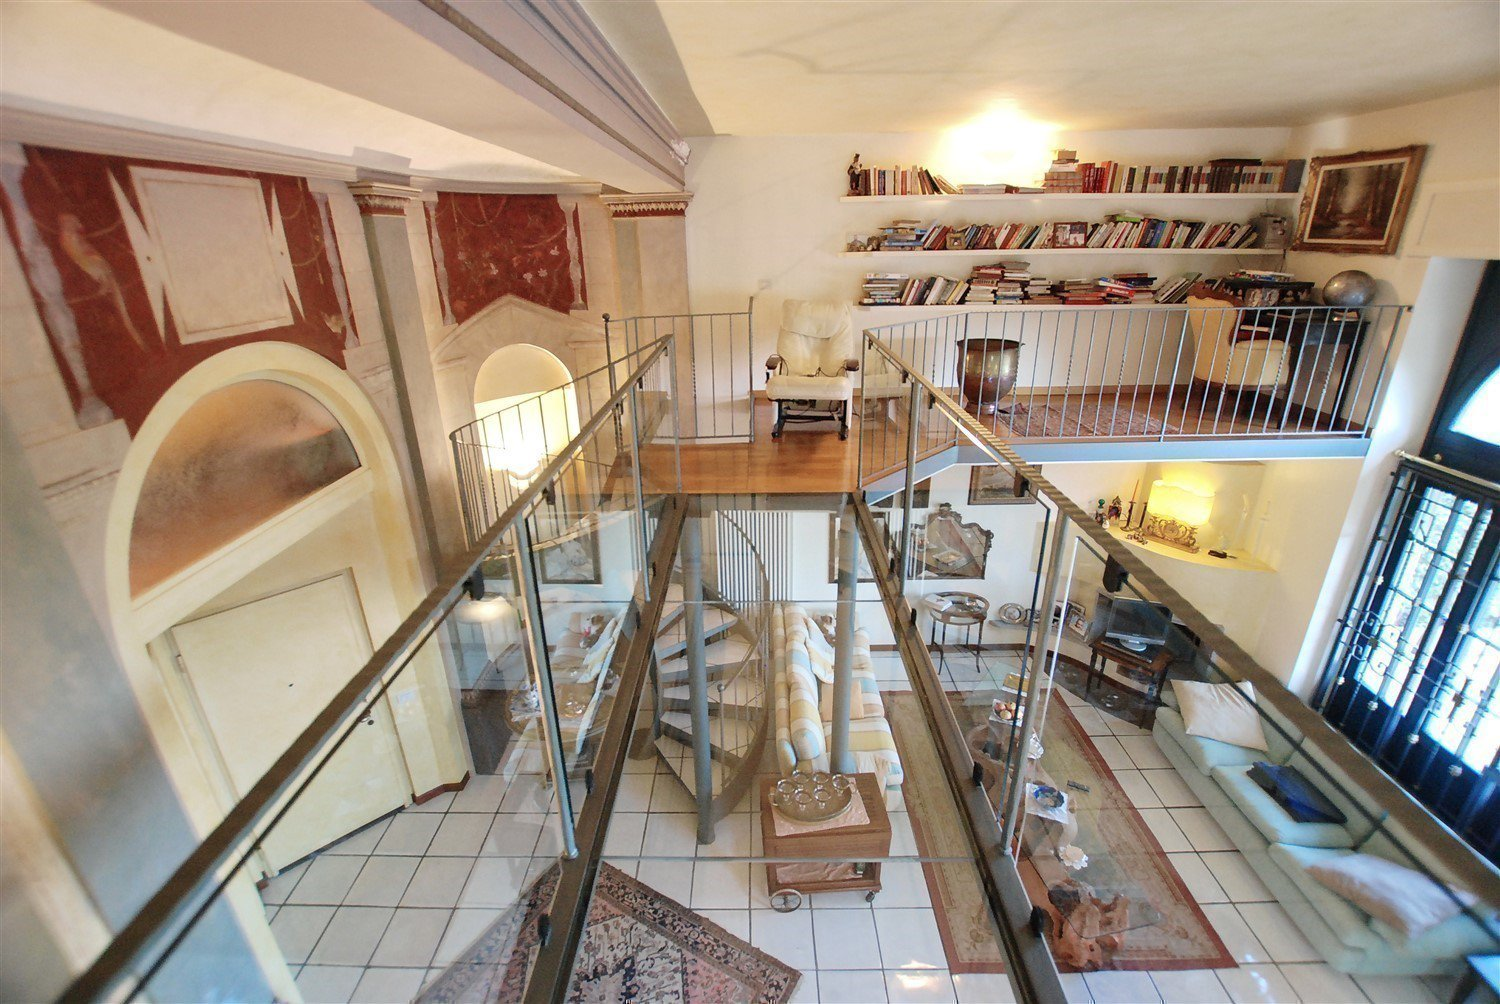 Prestigious apartament for sale in Castelletto Ticino - glass boardwalk